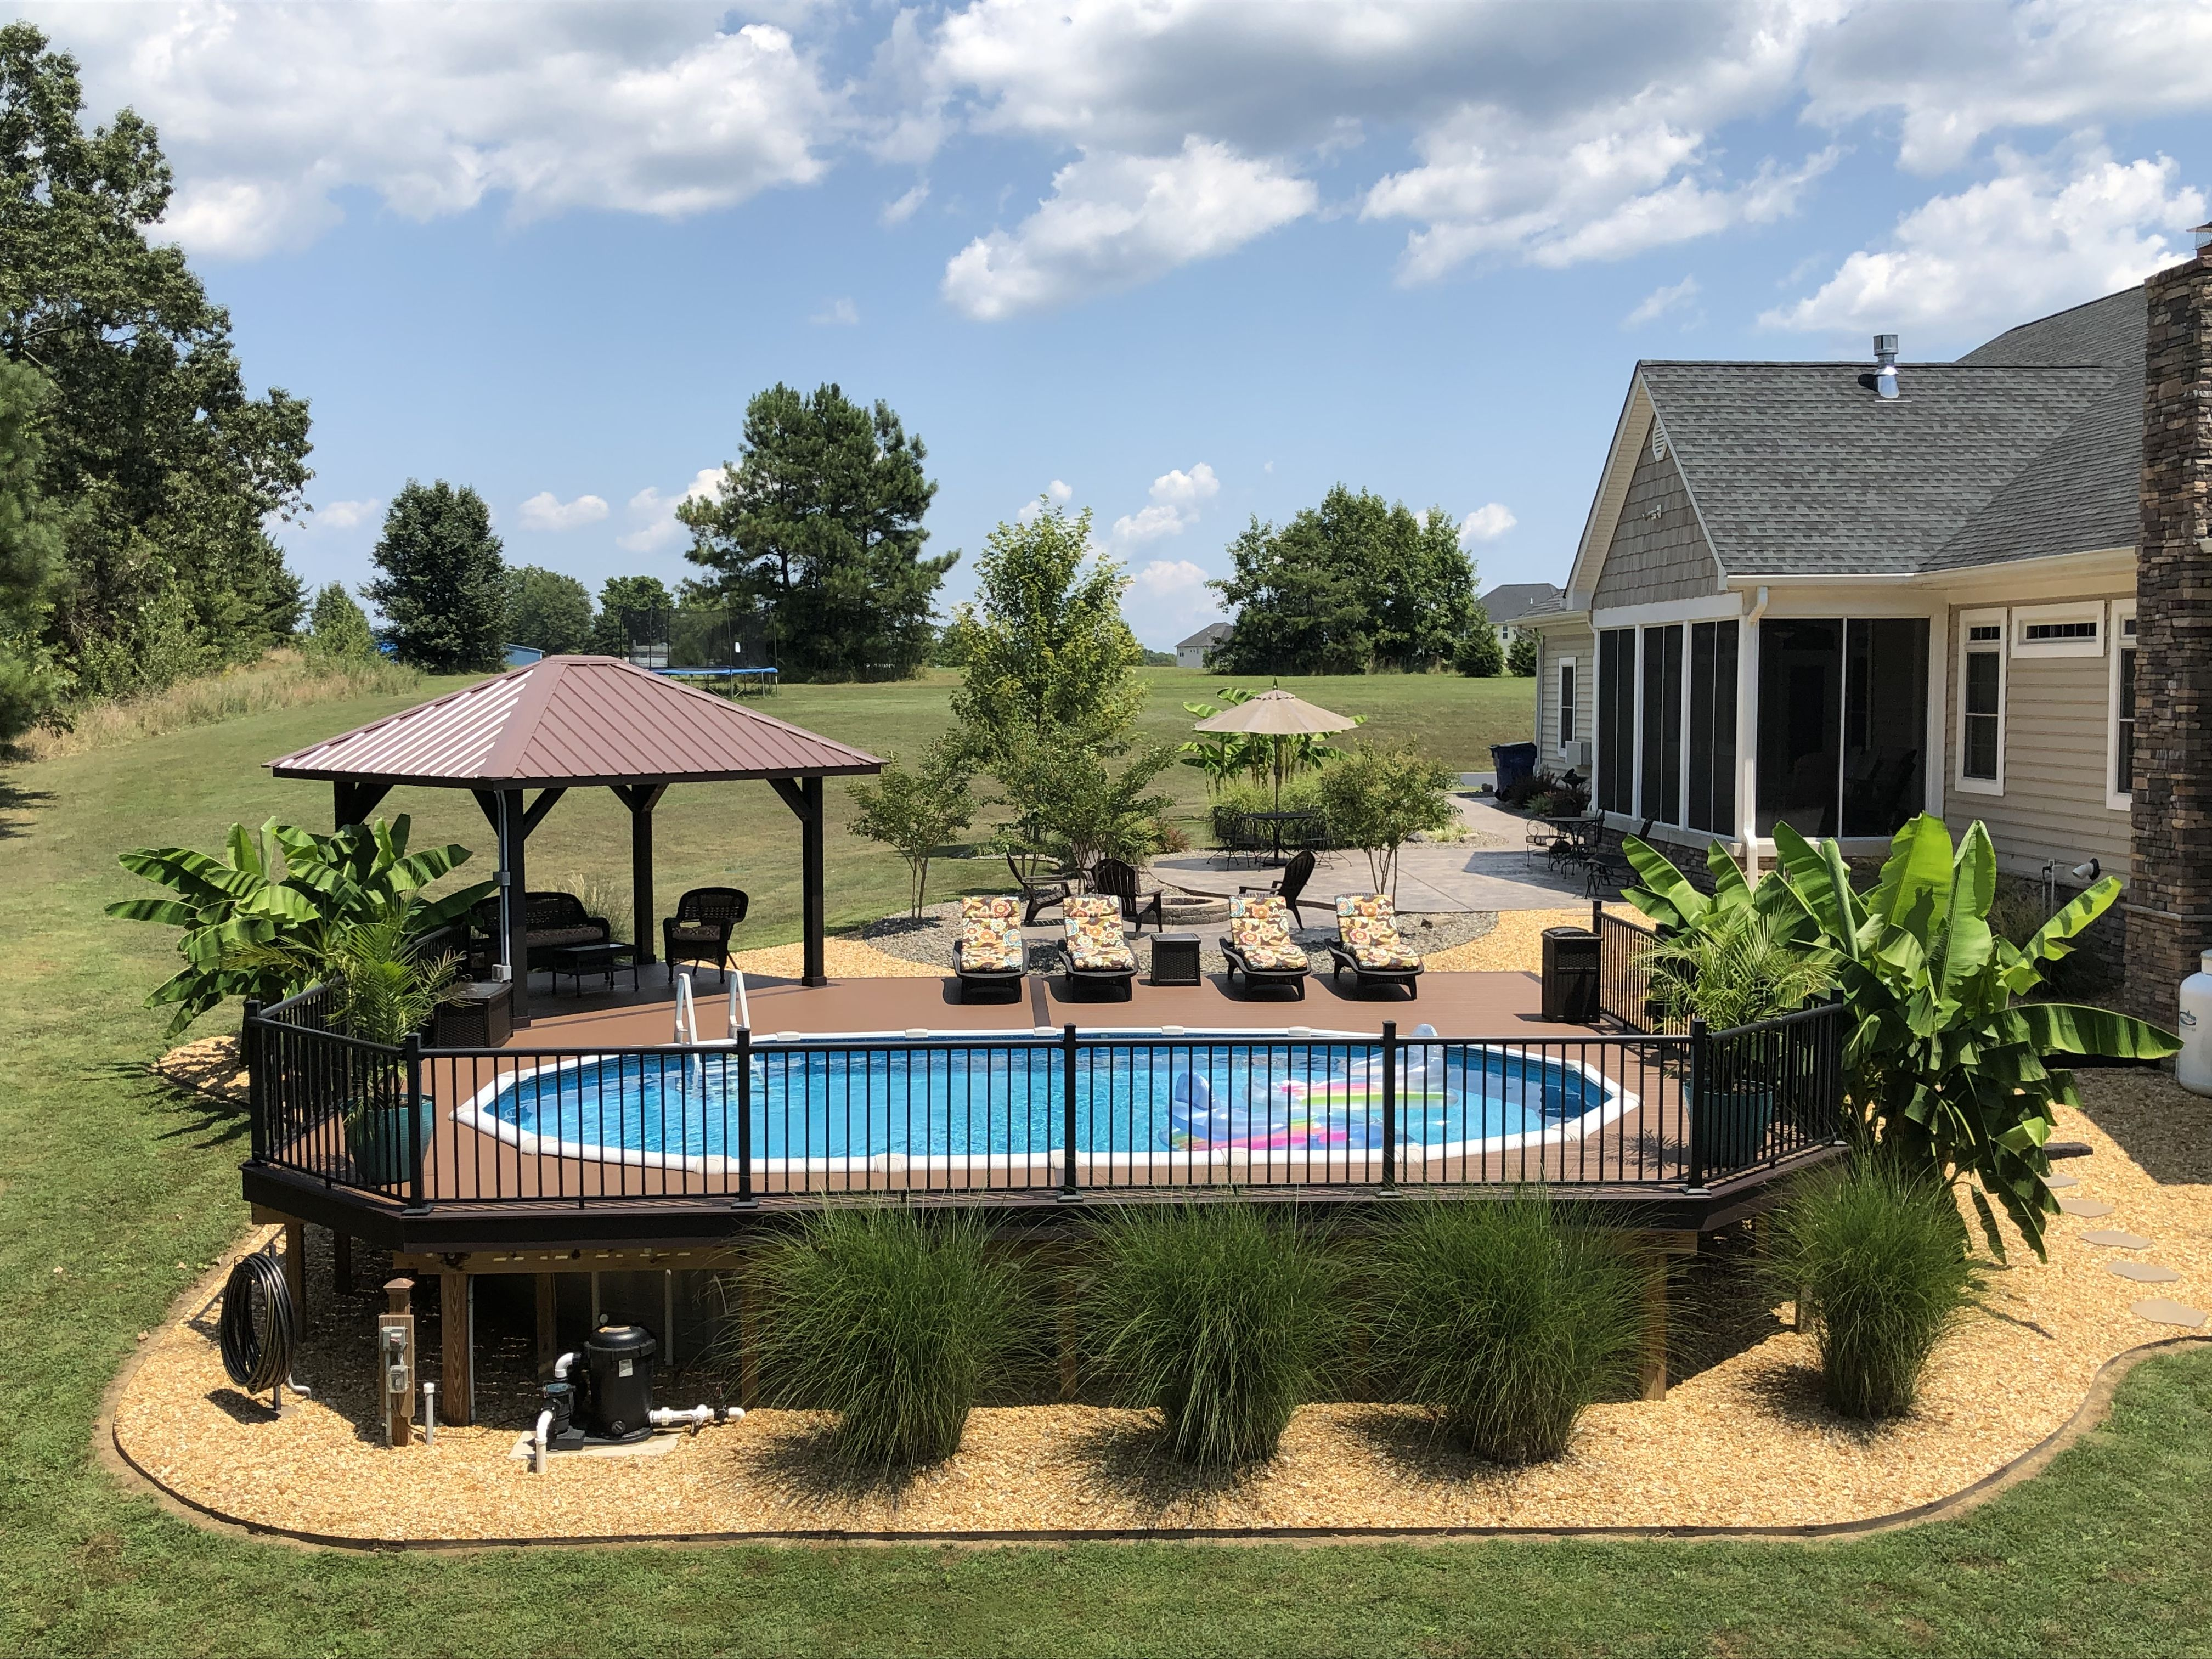 Amazing Above Ground Pool Above Ground Pool Landscaping Pools Backyard Inground Best Above Ground Pool Backyard landscaping ideas with above ground pool